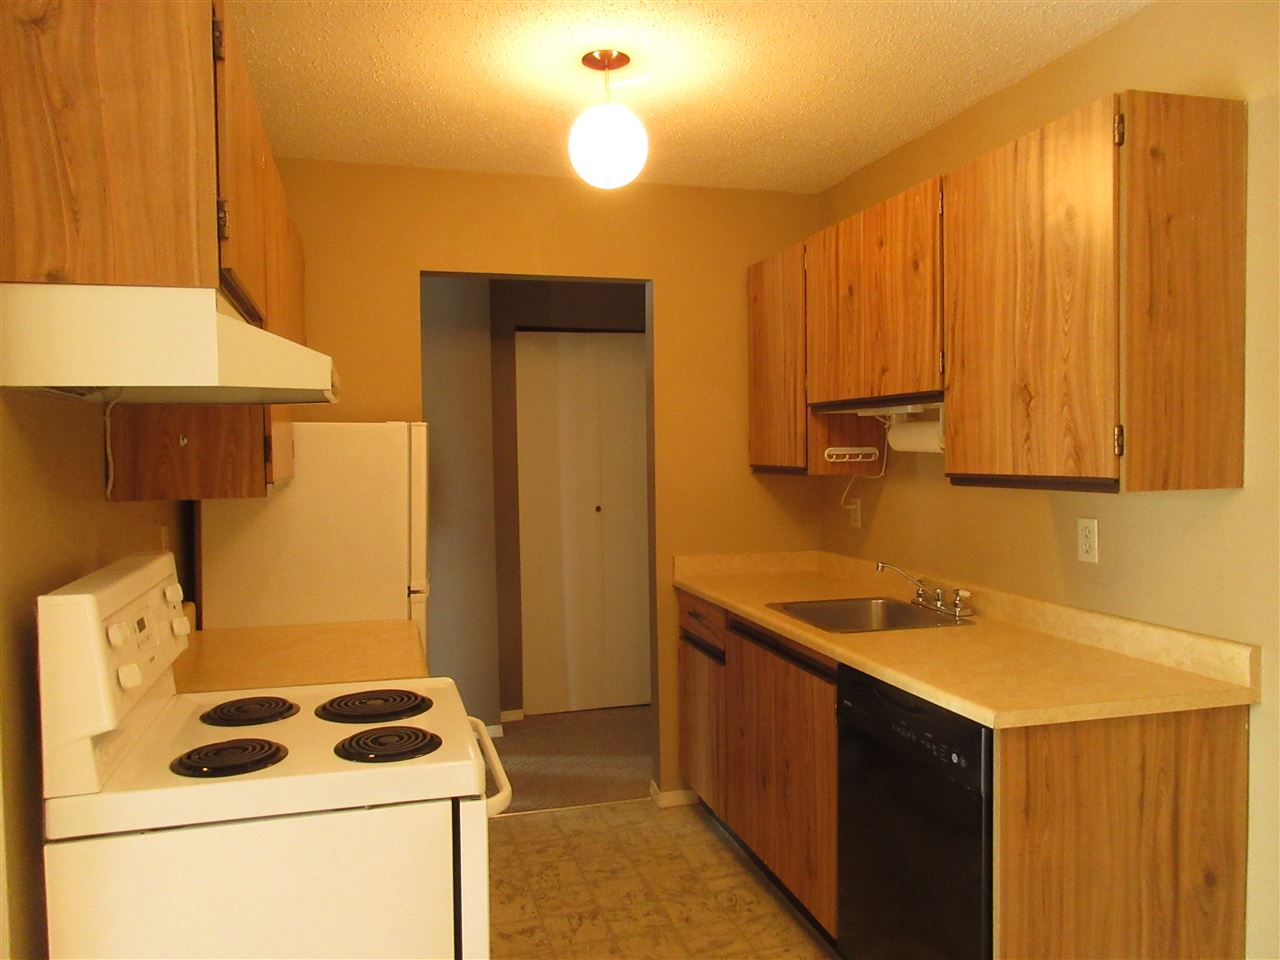 "Photo 5: 309 45749 SPADINA Avenue in Chilliwack: Chilliwack W Young-Well Condo for sale in ""CHILLIWACK GARDENS"" : MLS(r) # R2137266"